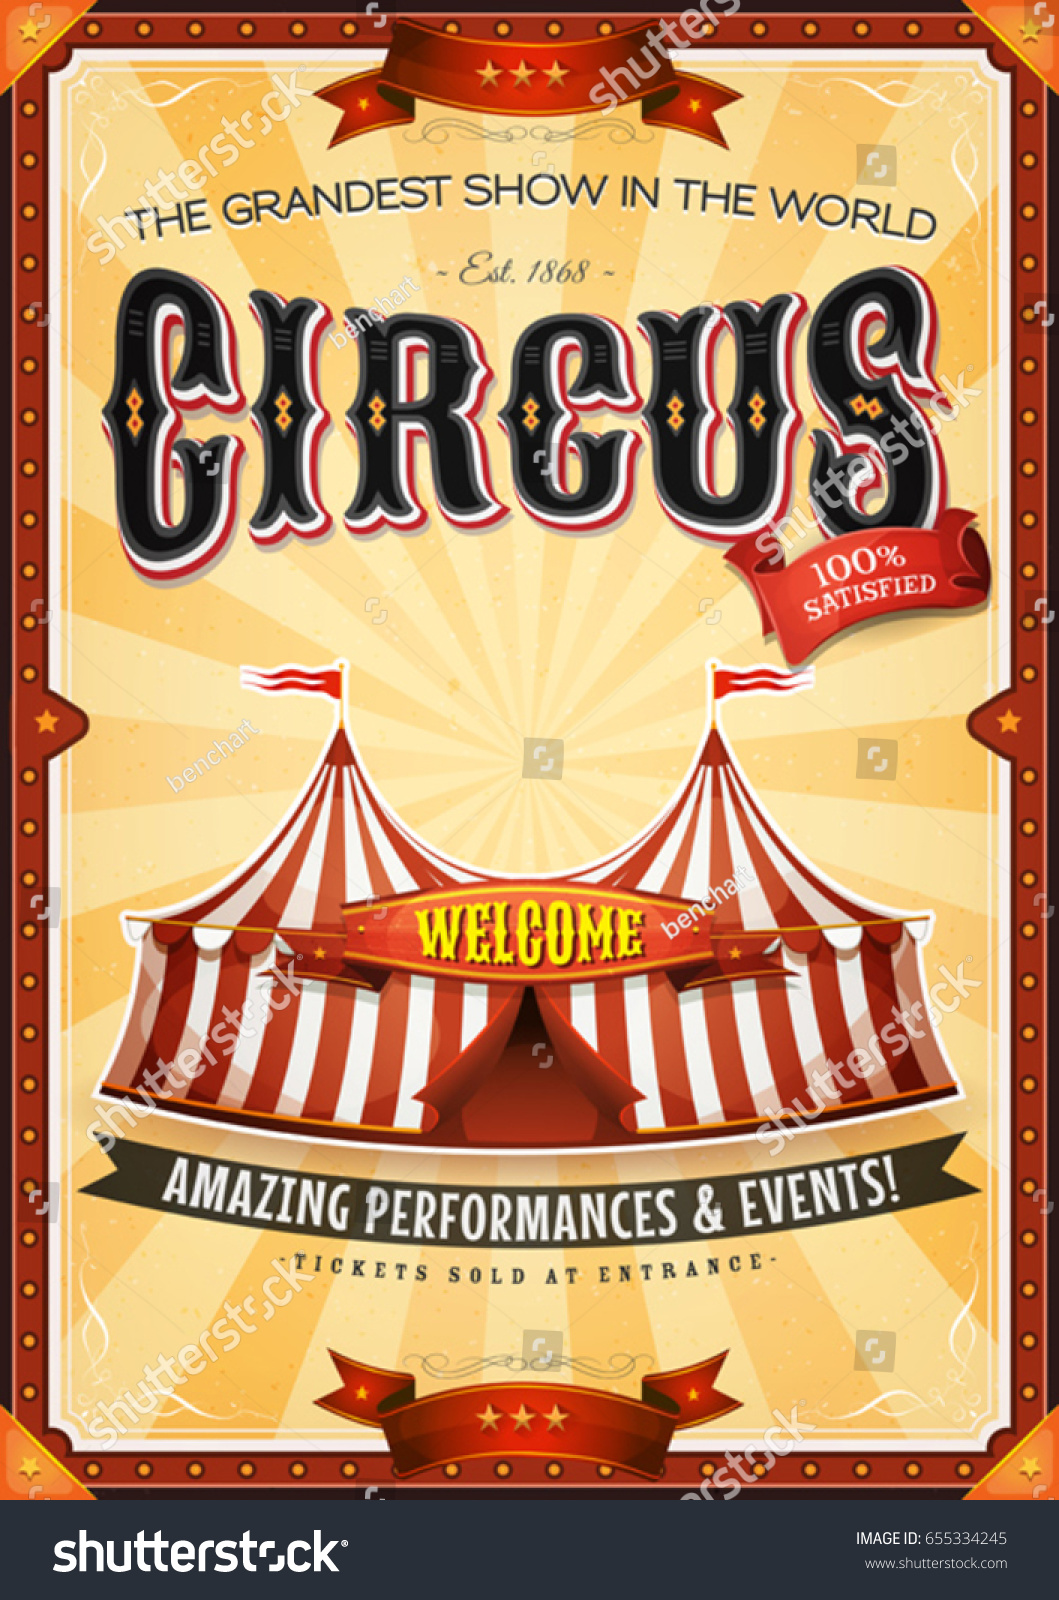 Vintage Grand Circus Poster Marquee Illustration Stock-Vektorgrafik ...